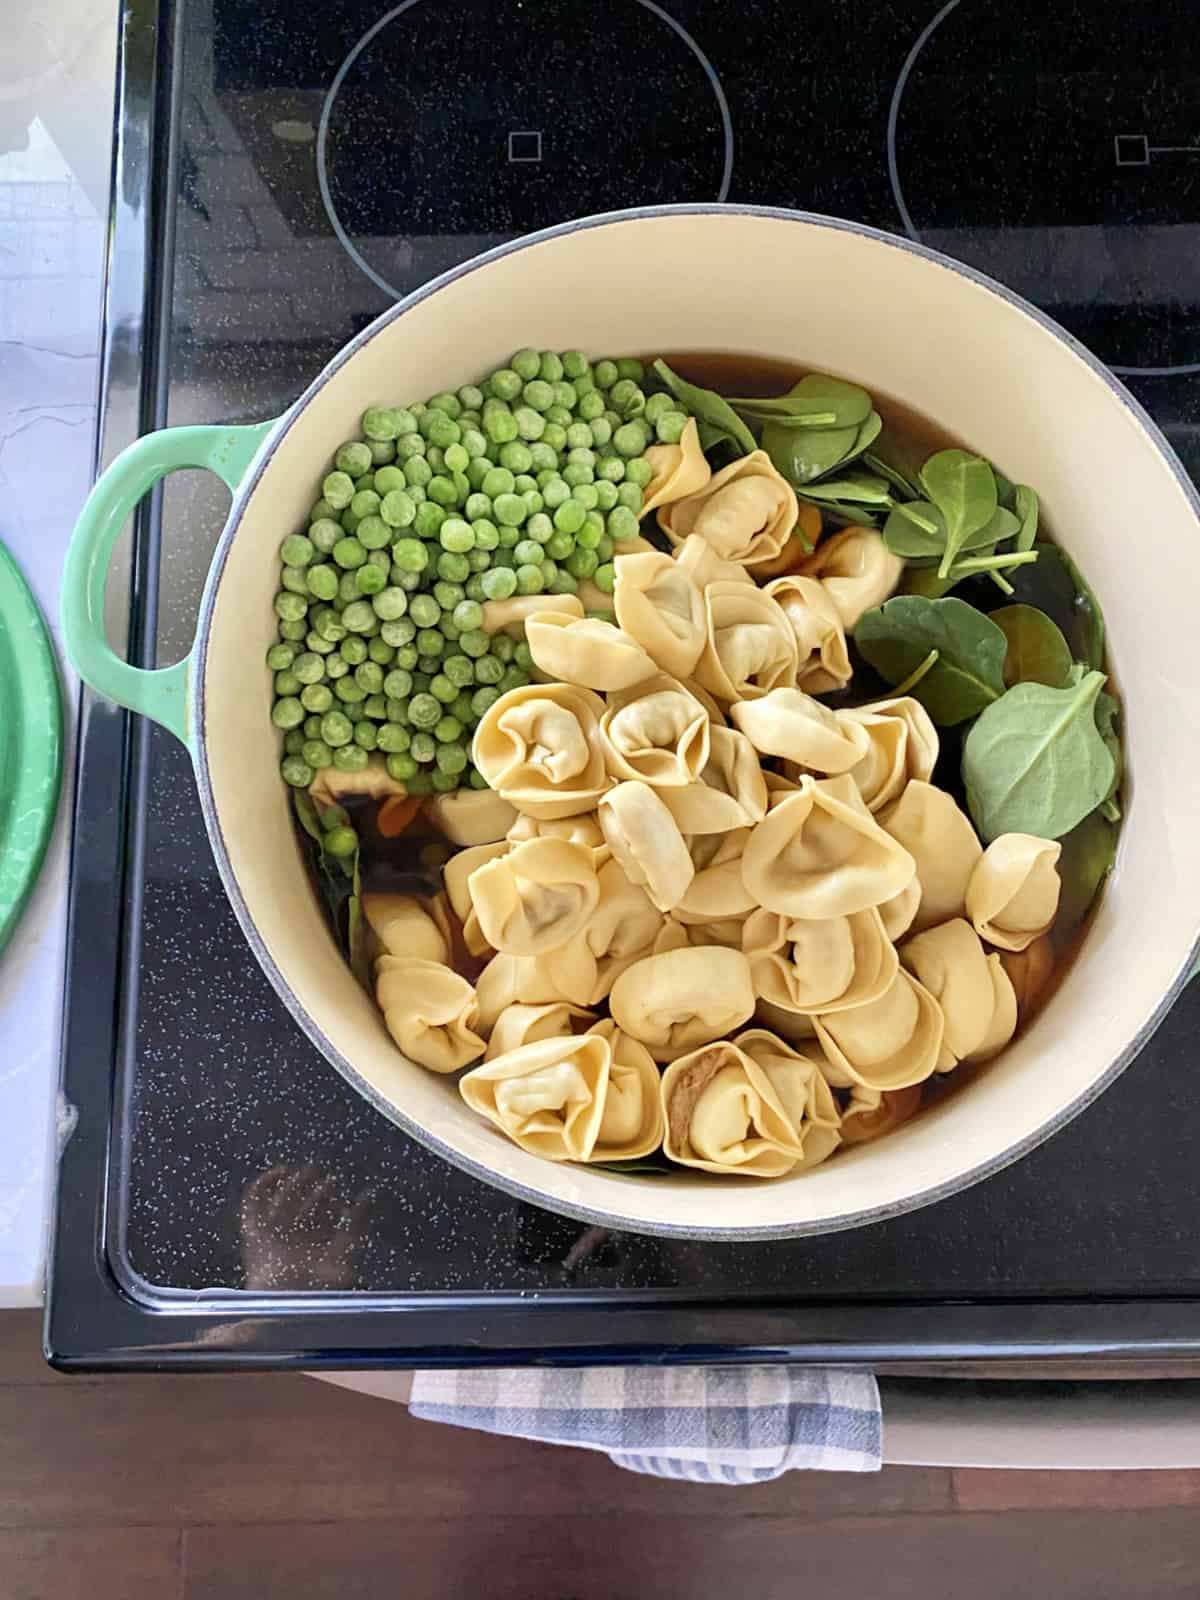 Top view of a green pot on a stove filled with tortellini, frozen peas, spinach leaves, and broth.